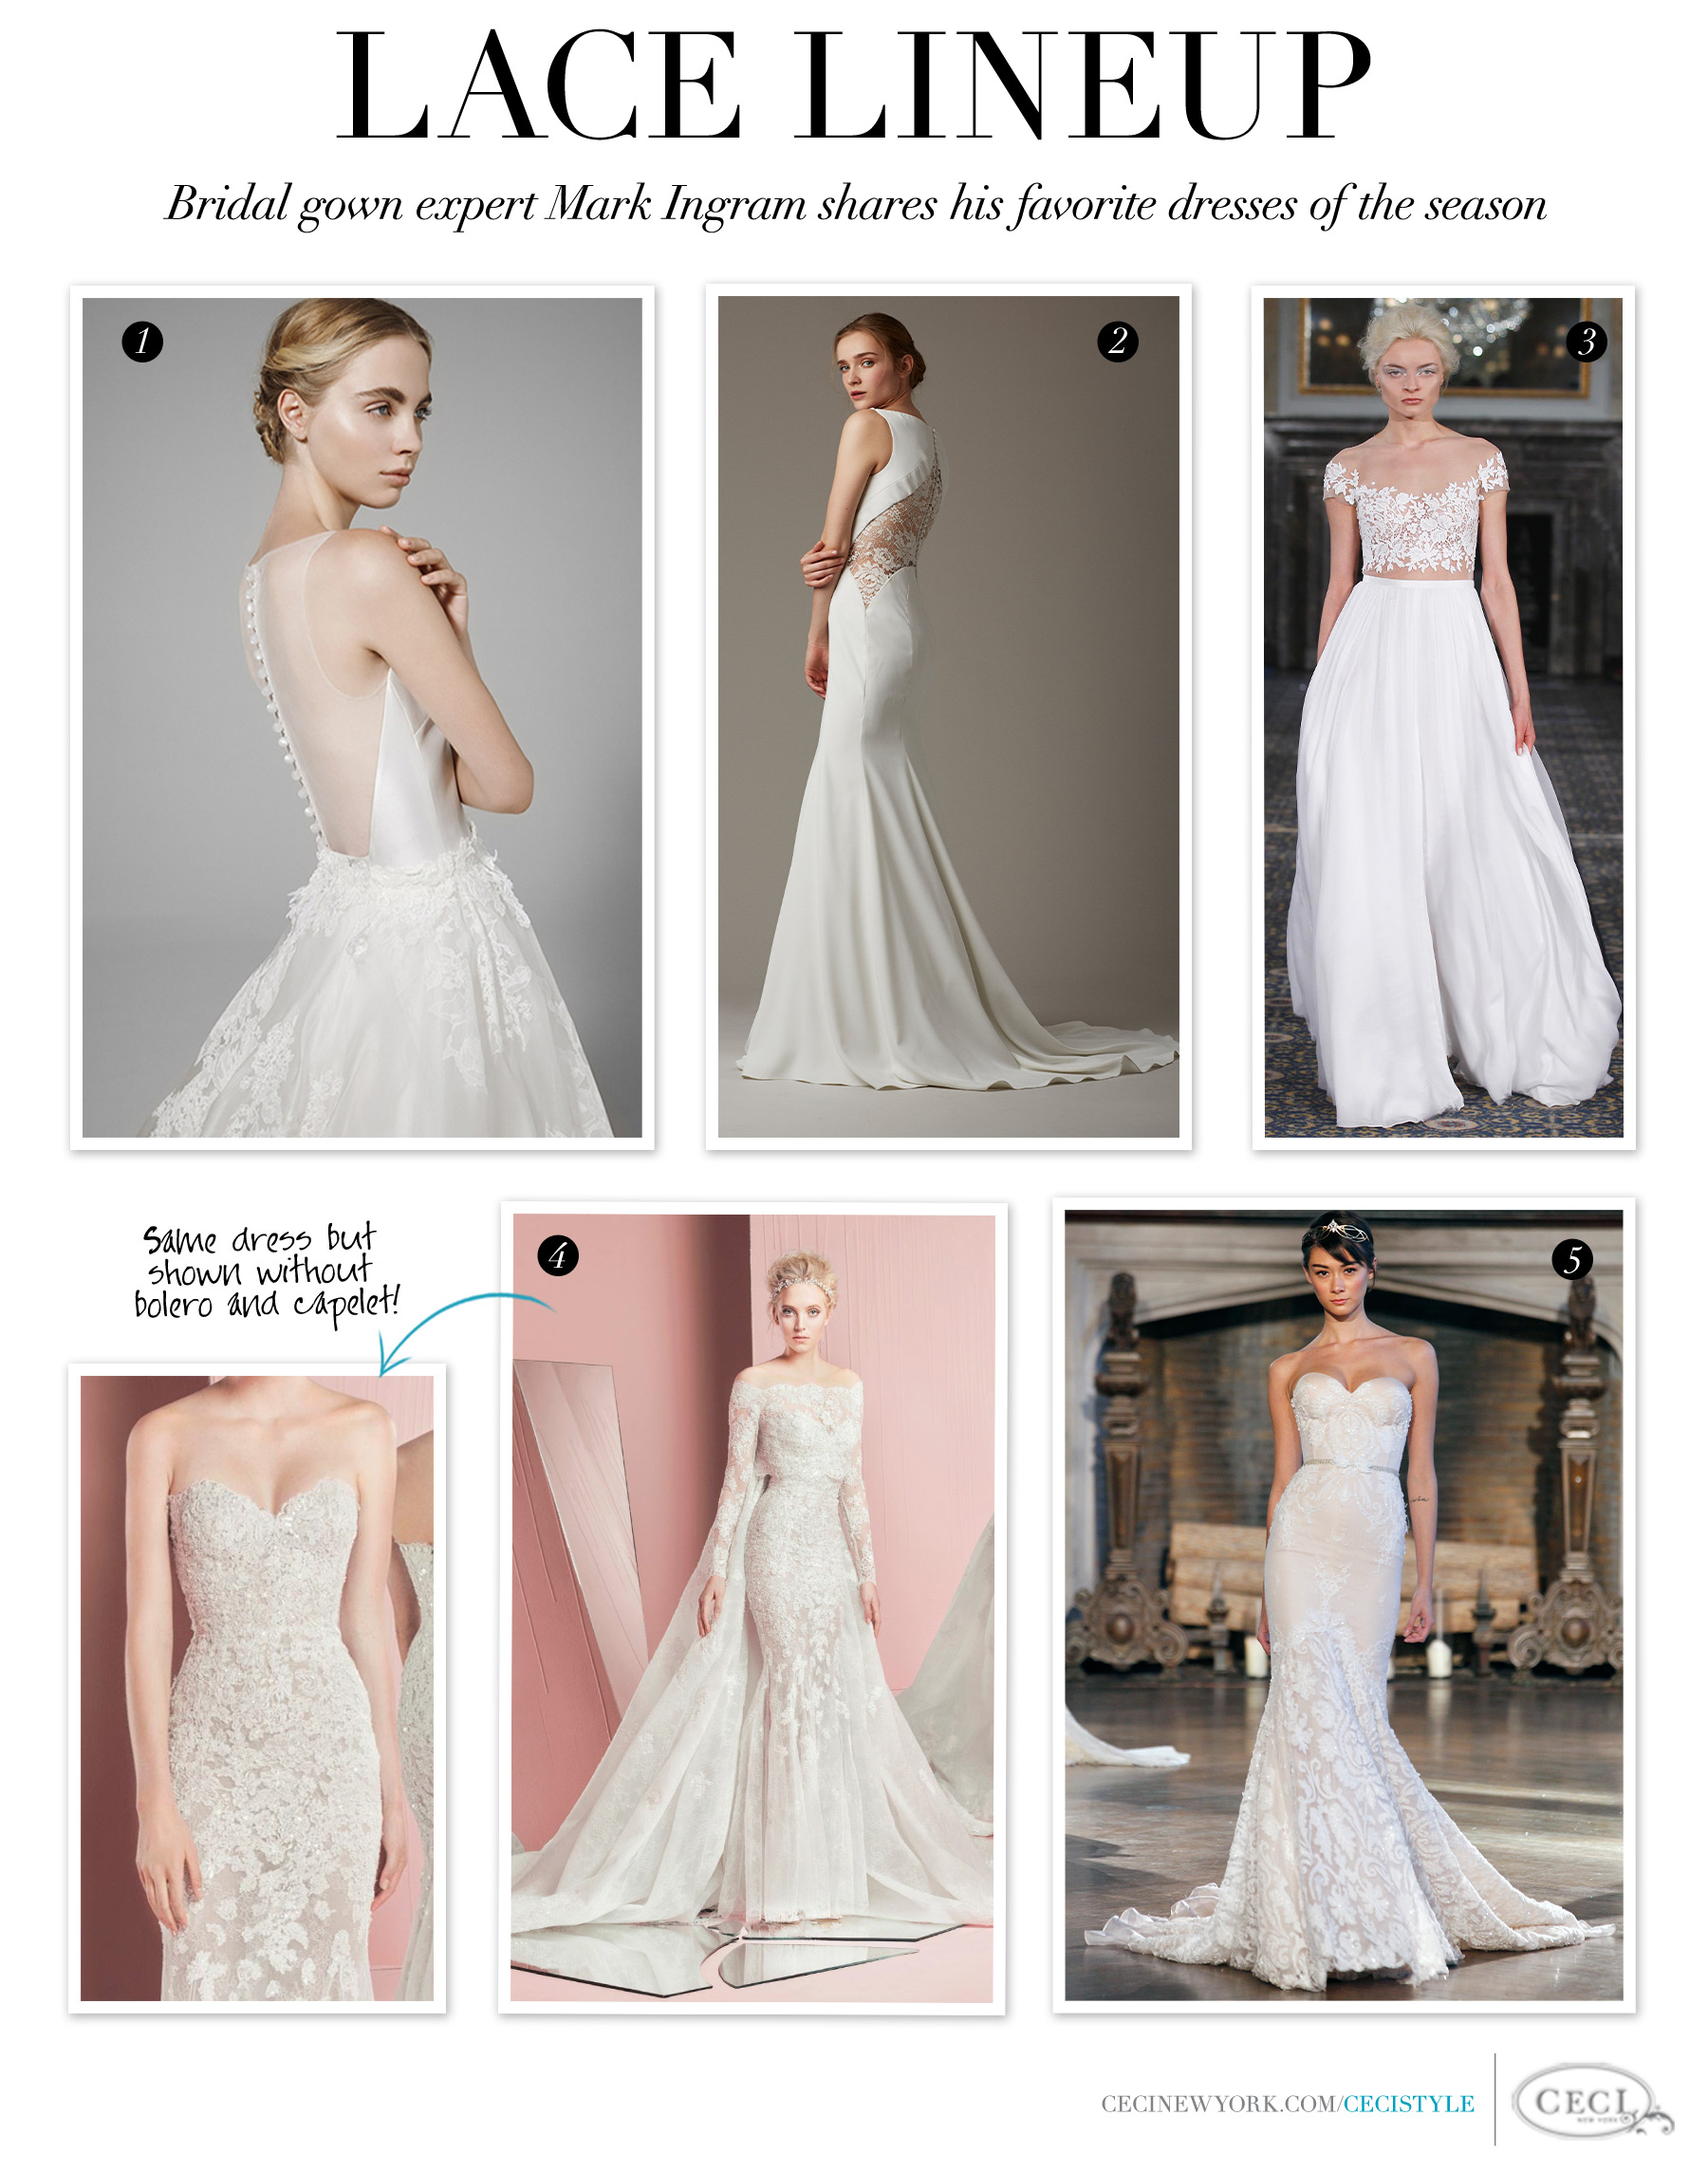 Lace Lineup - Bridal gown expert Mark Ingram shares his favorite dresses of the season